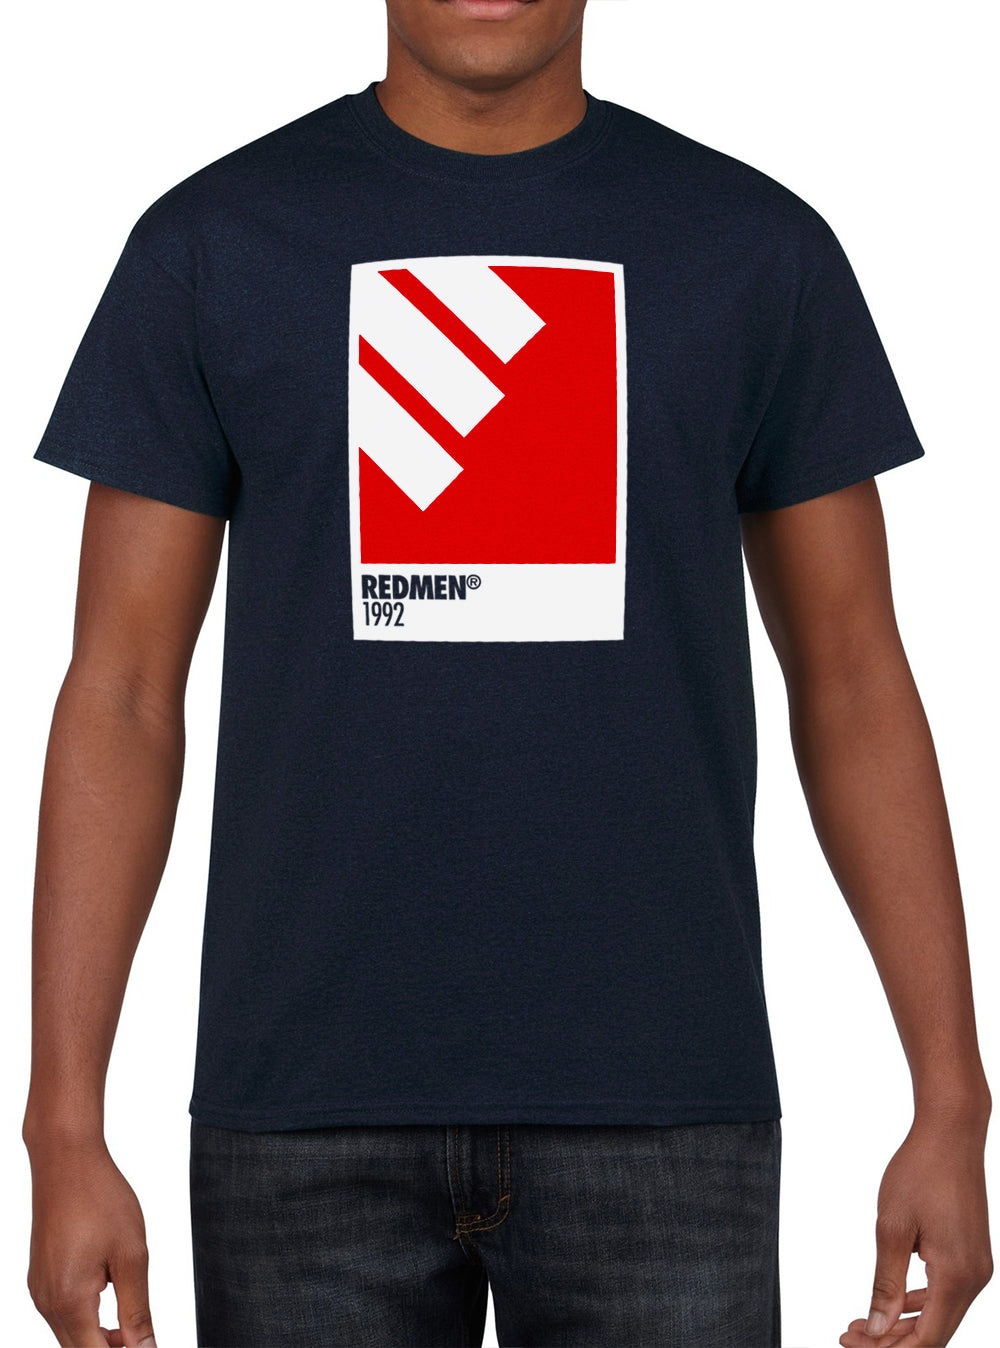 ALL MY COLOURS 'Redmen 1992 Homefront' Edition Tee - Navy